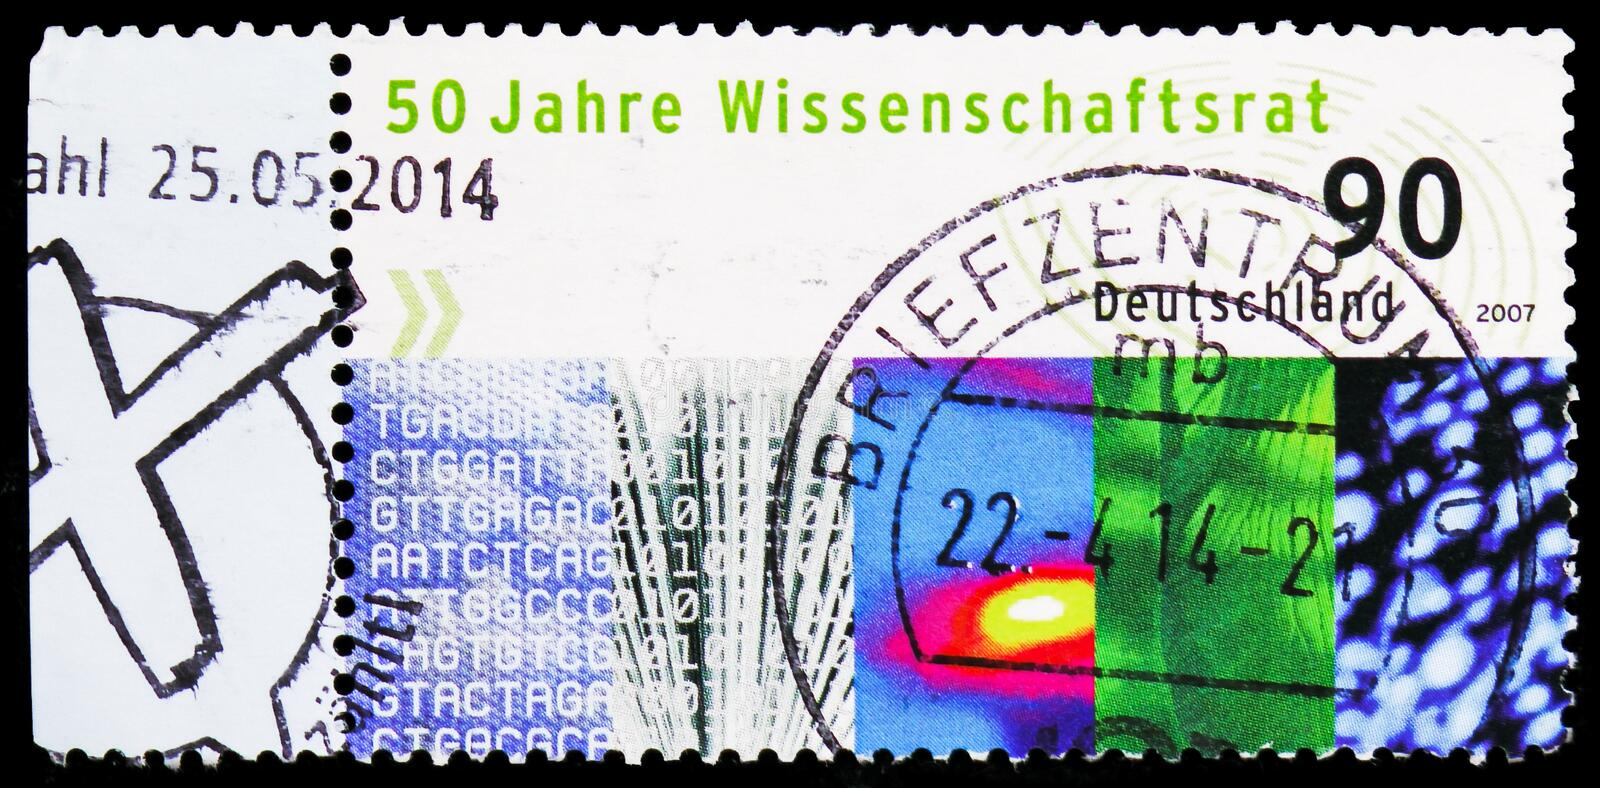 Scientific council, 50th Anniversary of Council of science and Humanities serie, circa 2007. MOSCOW, RUSSIA - FEBRUARY 22, 2019: A stamp printed in Germany royalty free stock photography